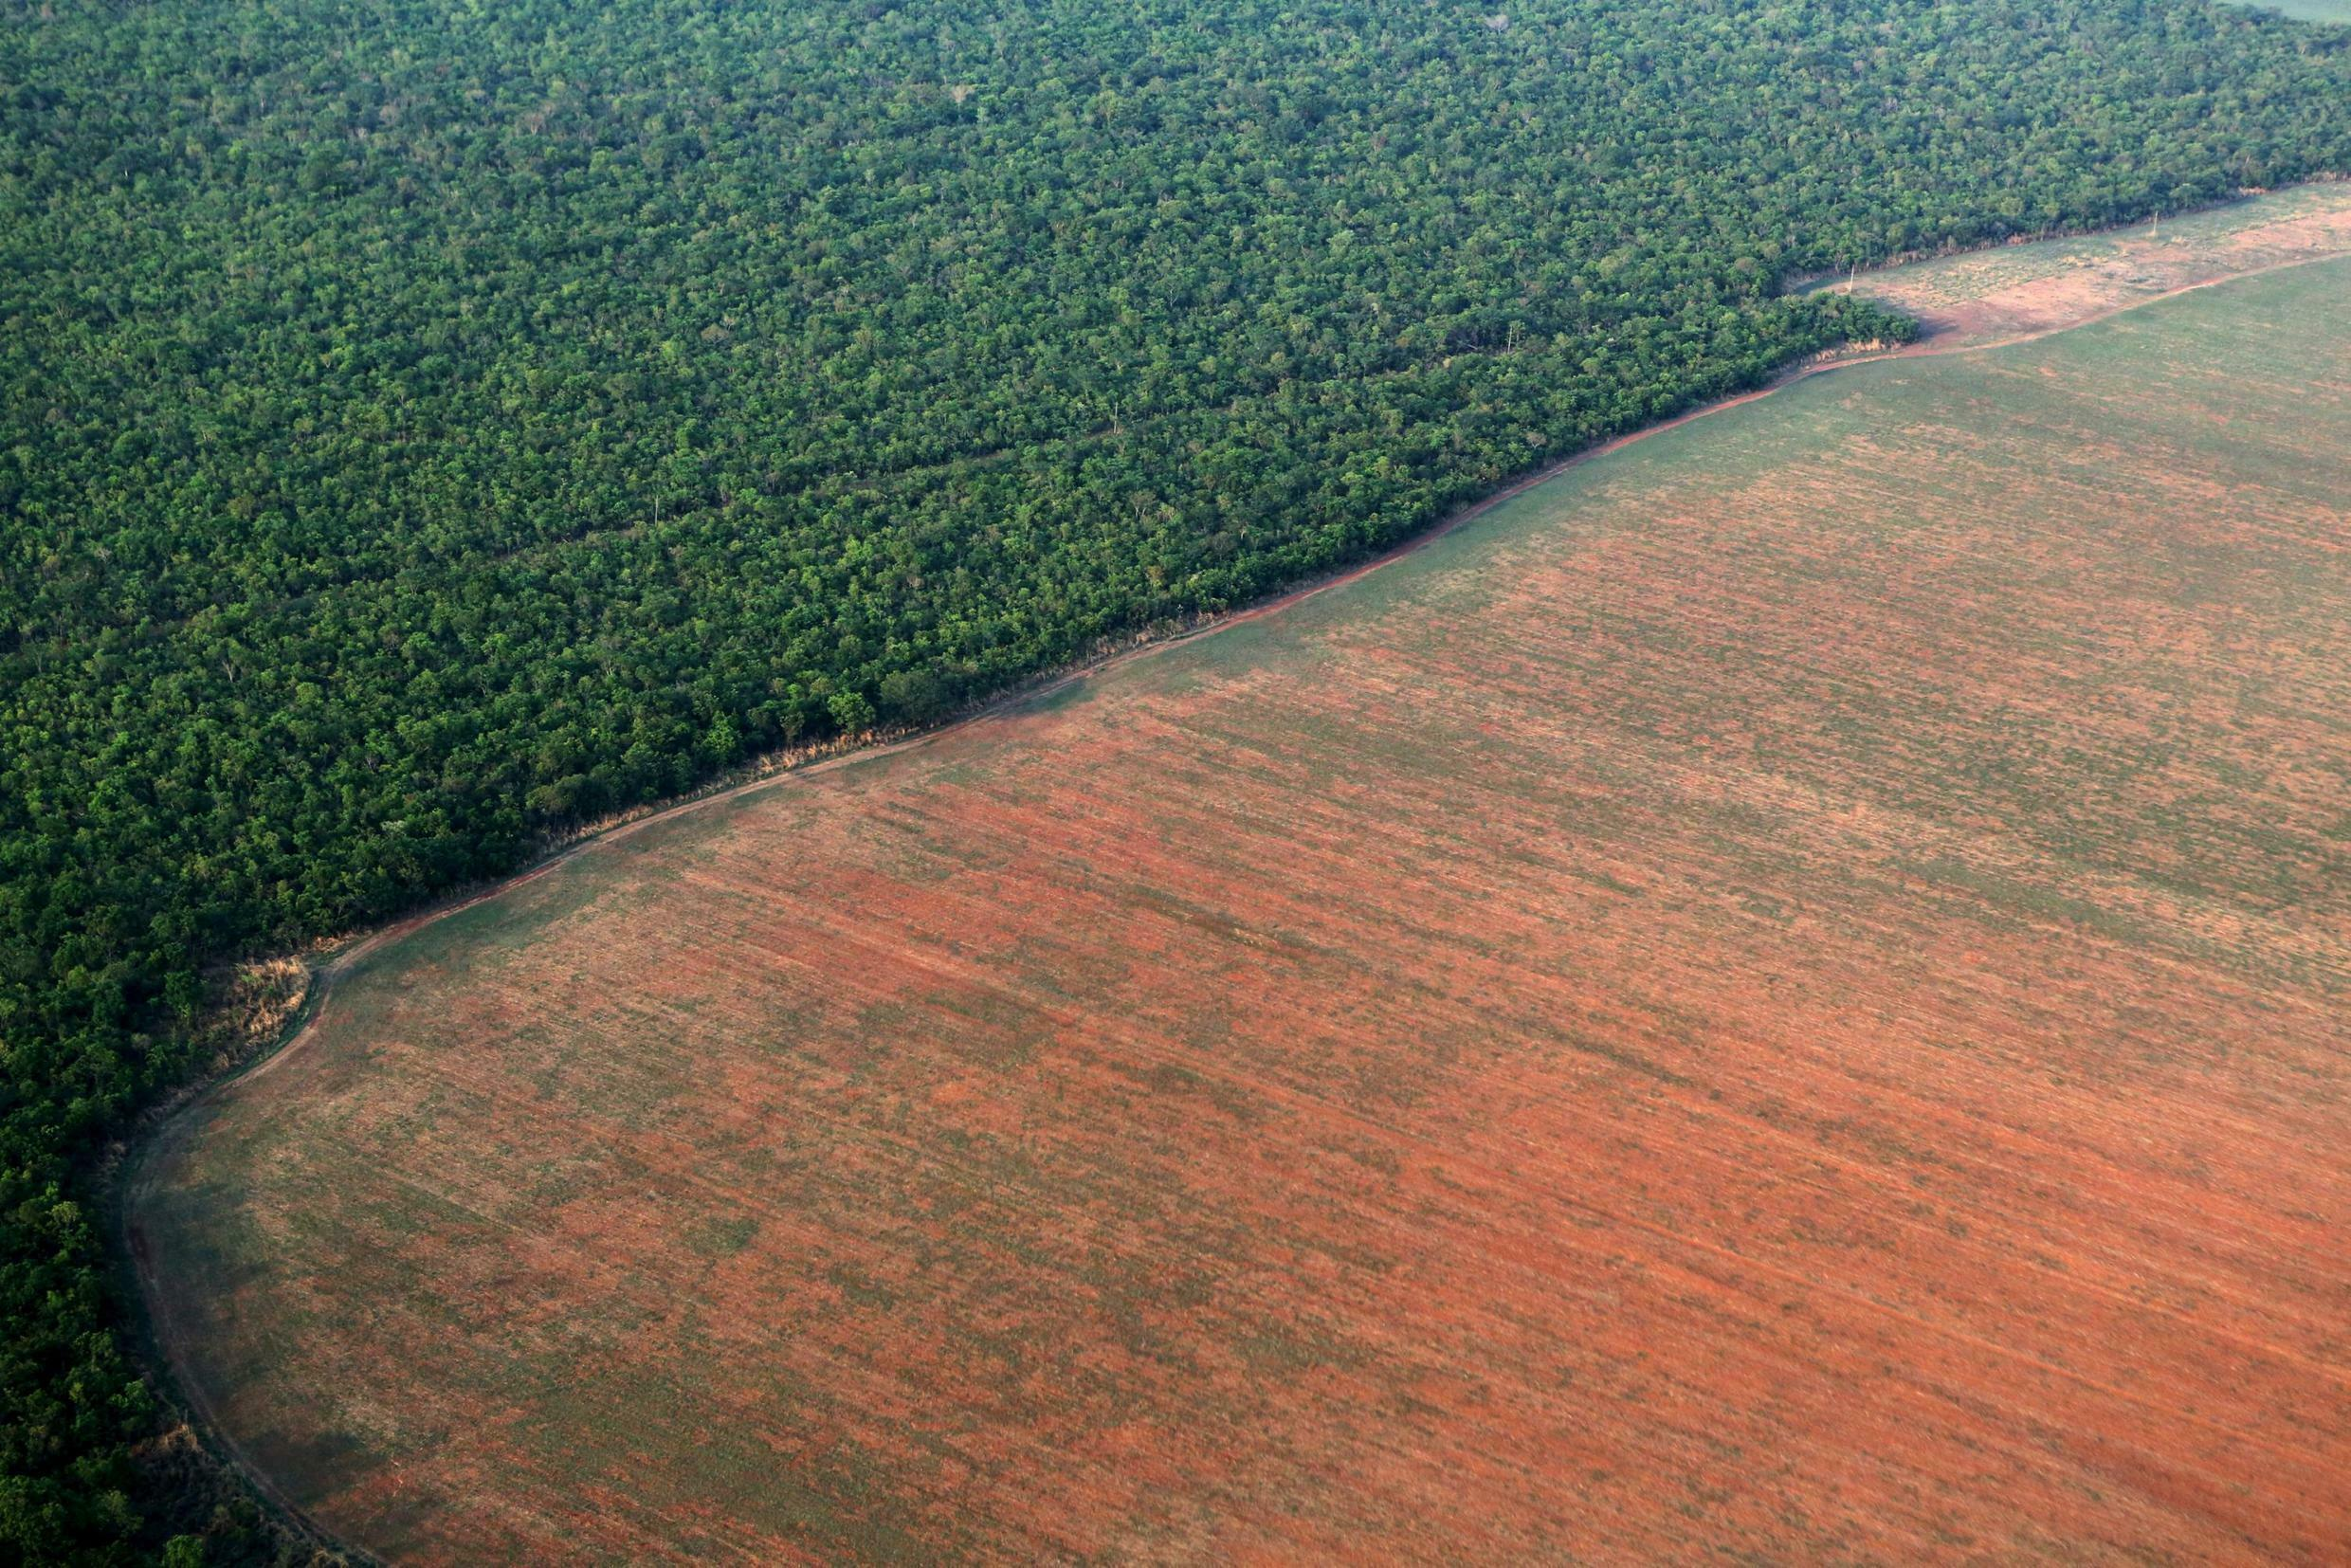 Parts of the Amazon forest cleared for soybean cultivation in the western state of Mato Grosso, Brazil.